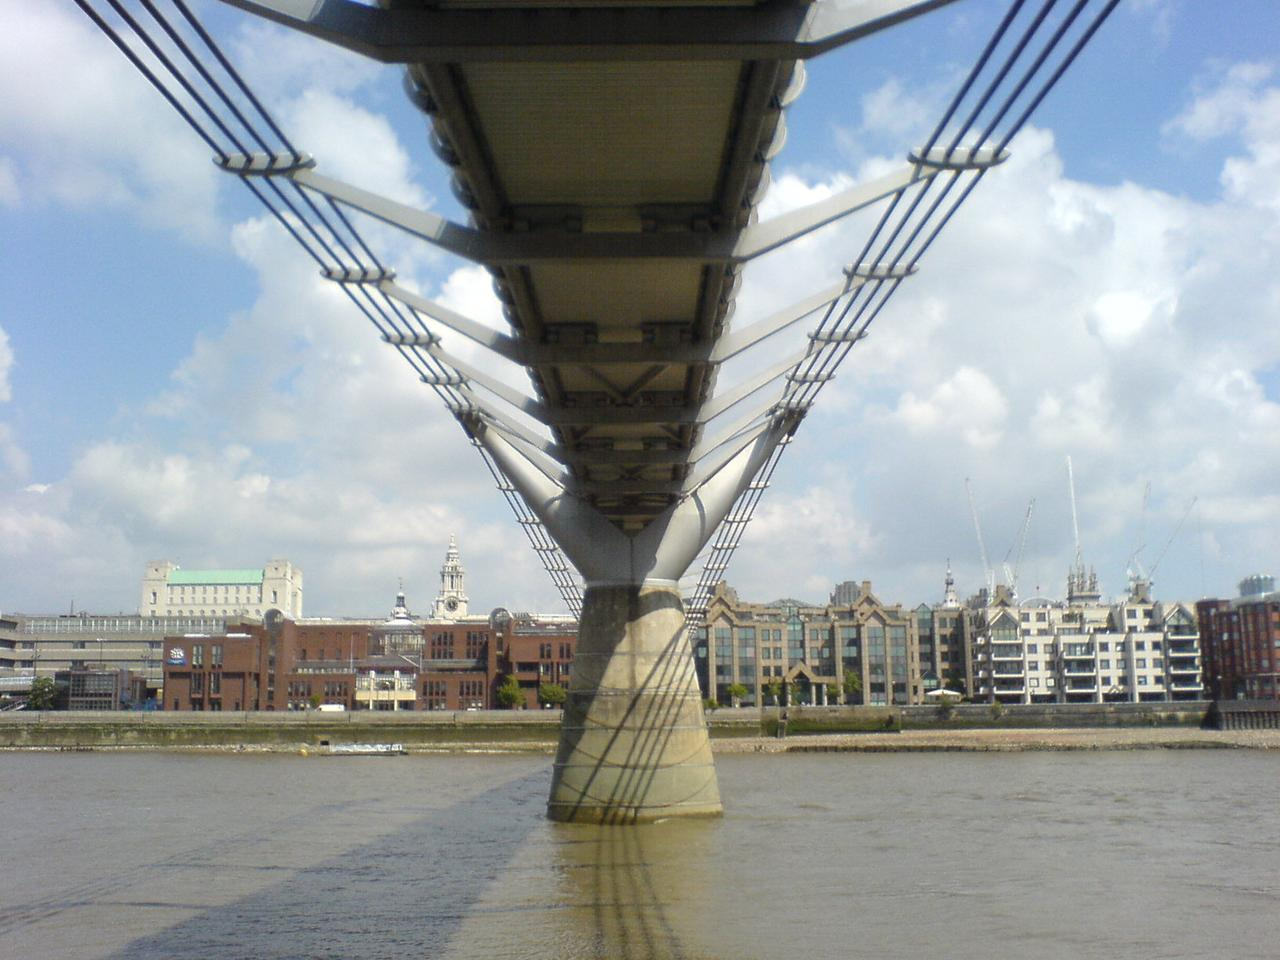 Underside of the Millennium Bridge, which swayed due to the cadence of those walking across it before dampers were added (Photo: KlickingKarl via Wikimedia Commons CCA-SA 3.0)